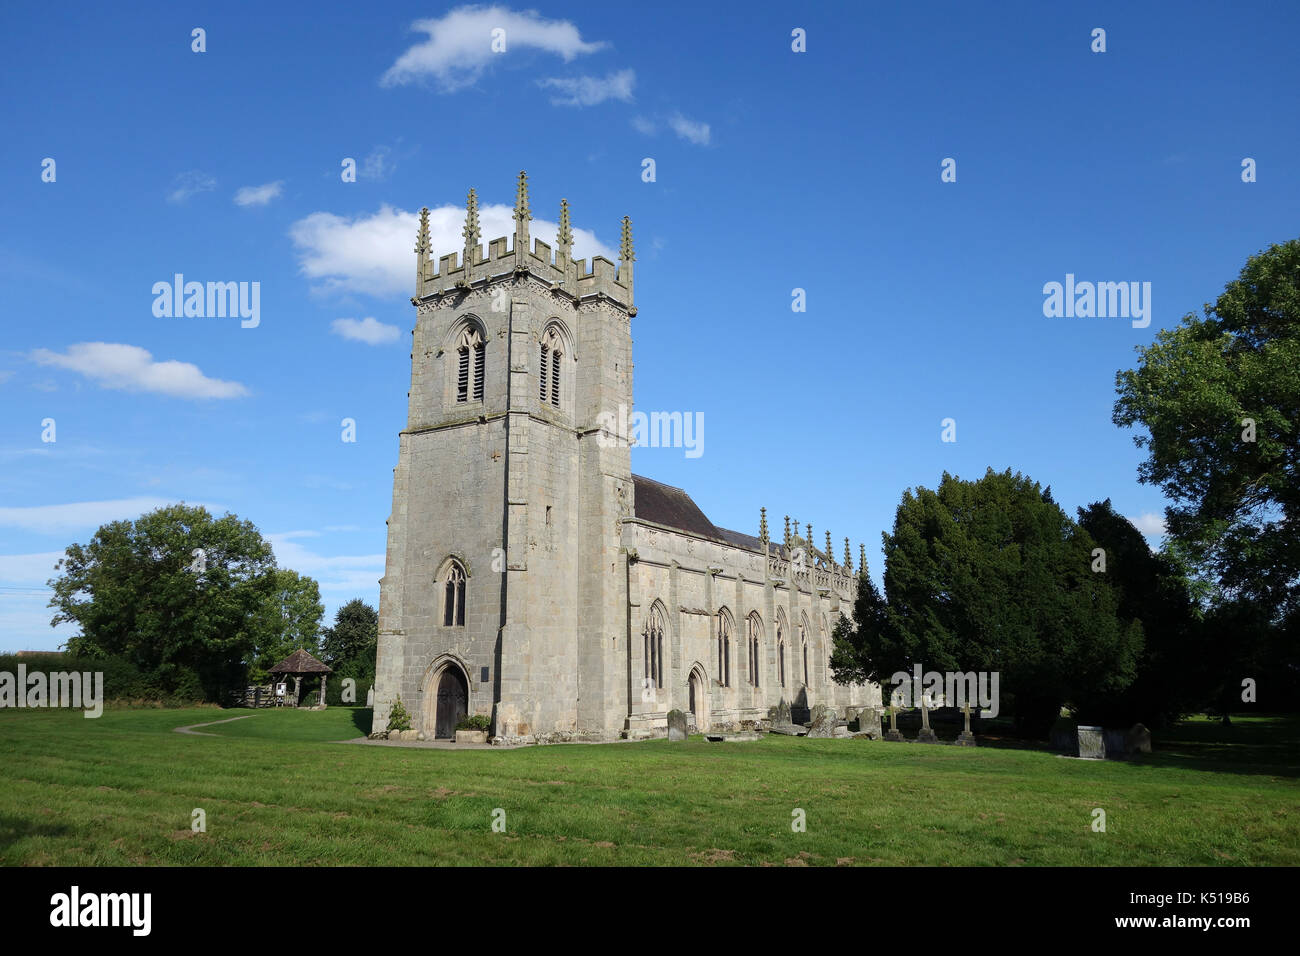 Battlefield Church built on the site of the Battle of Shrewsbury in 1403. St Mary Magdalene's Church is a redundant Anglican church in the village of  - Stock Image